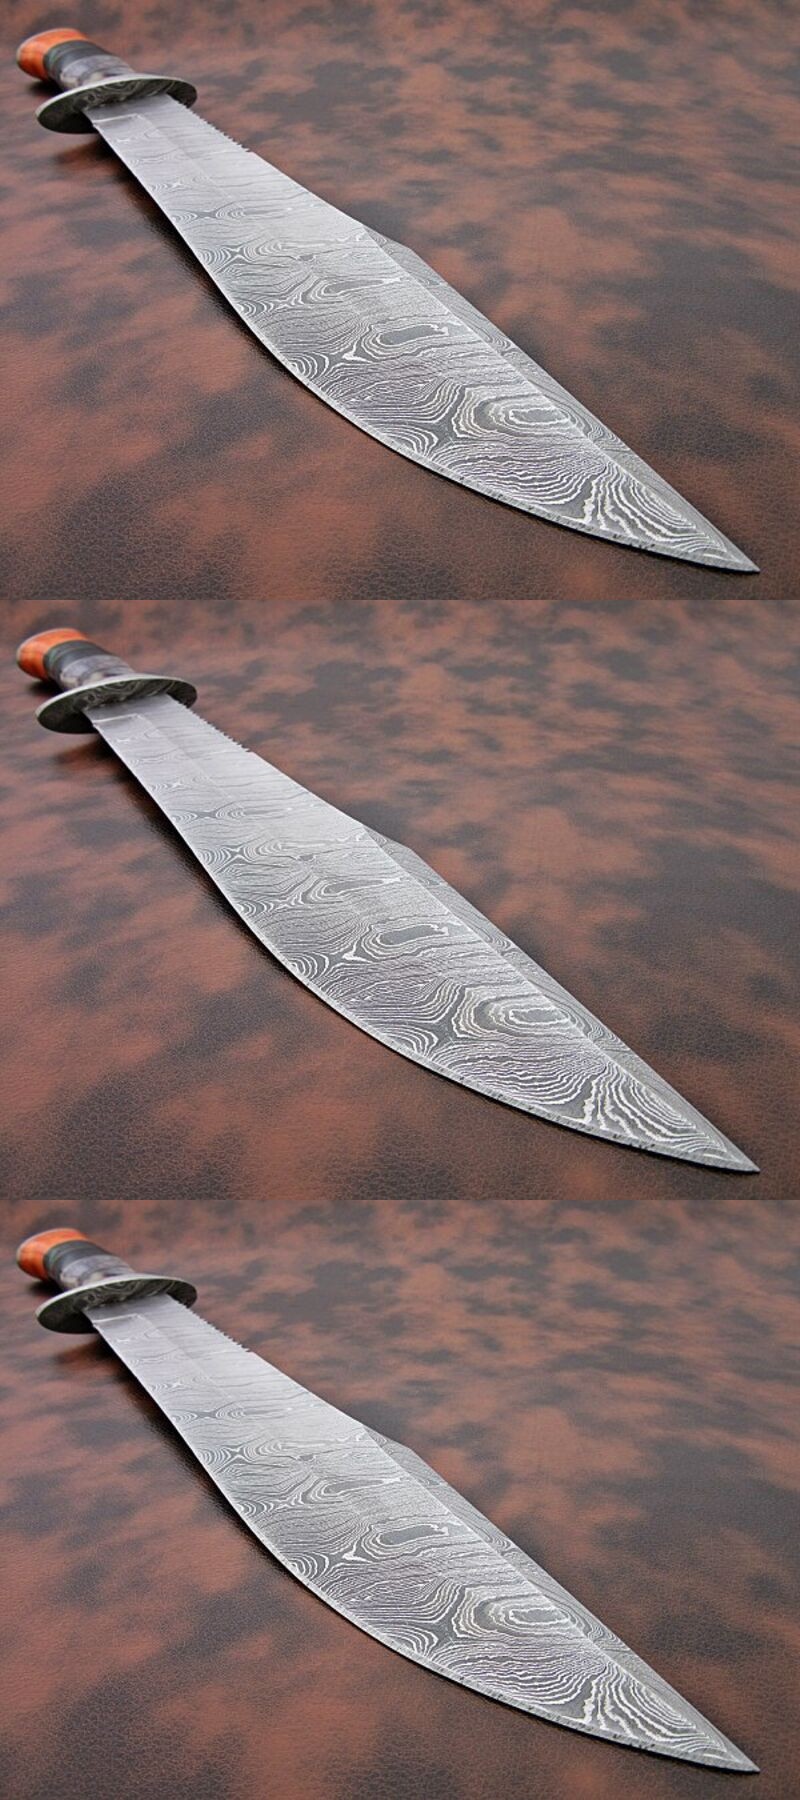 hunting are also called hunting knives which are very popular For fishing, outdoor, camping, hunting, survival knives or knives survival, photography in USA Mens. Womens in USA are like to give gifts as surprises for boyfriends, anniversary gift, surprise gift. Women know that hunting tactical or survival knives are the best tips to